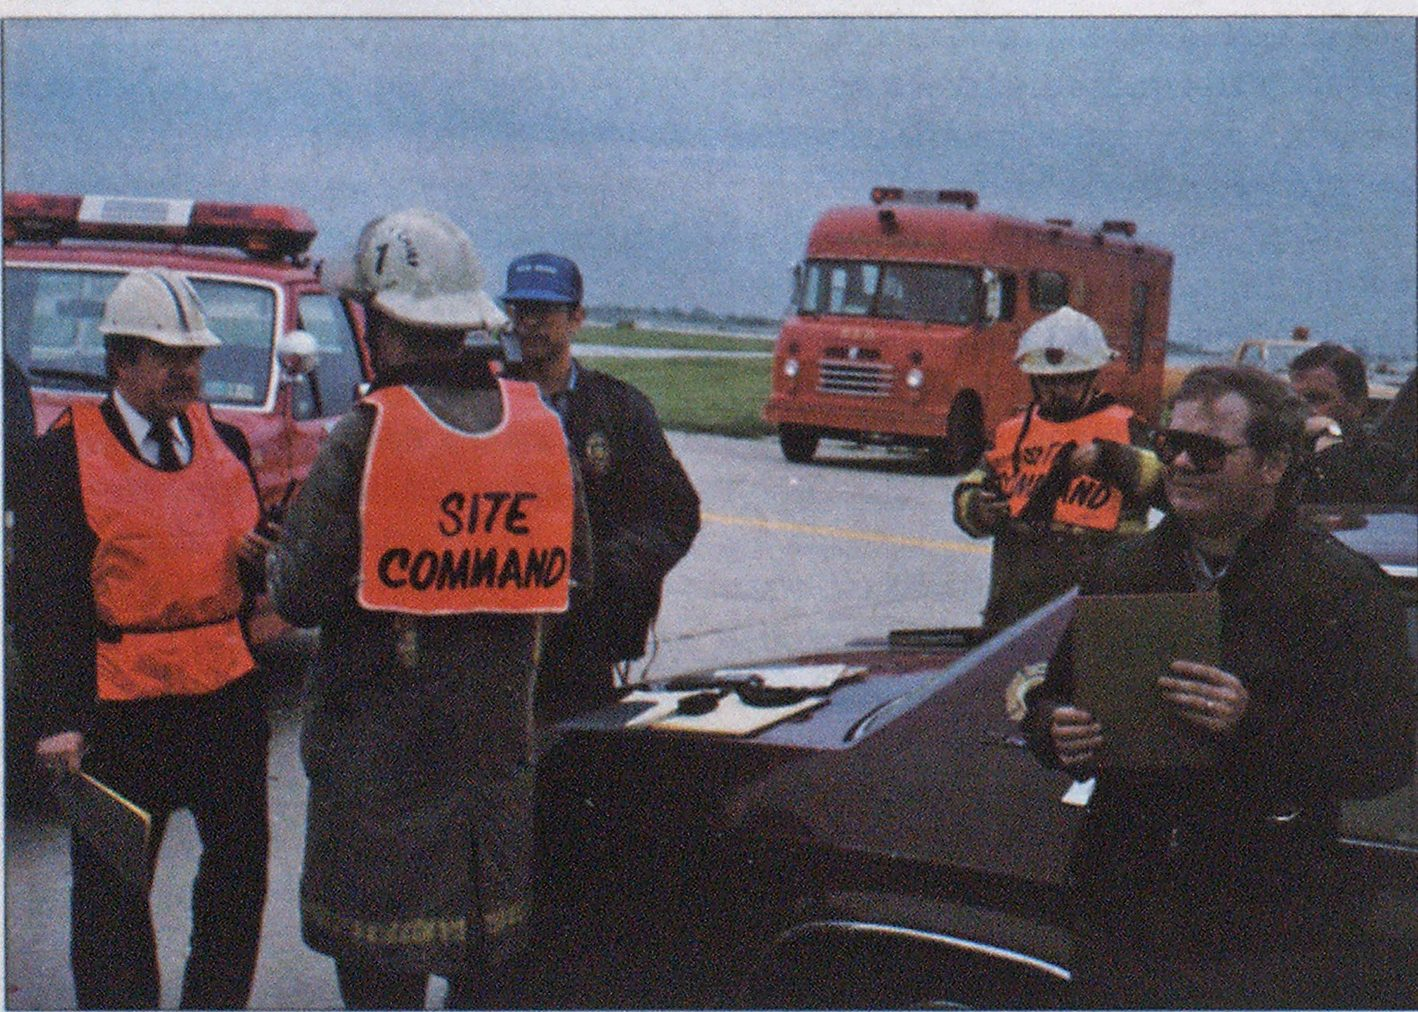 Incident command site was selected and functions identified by vests.